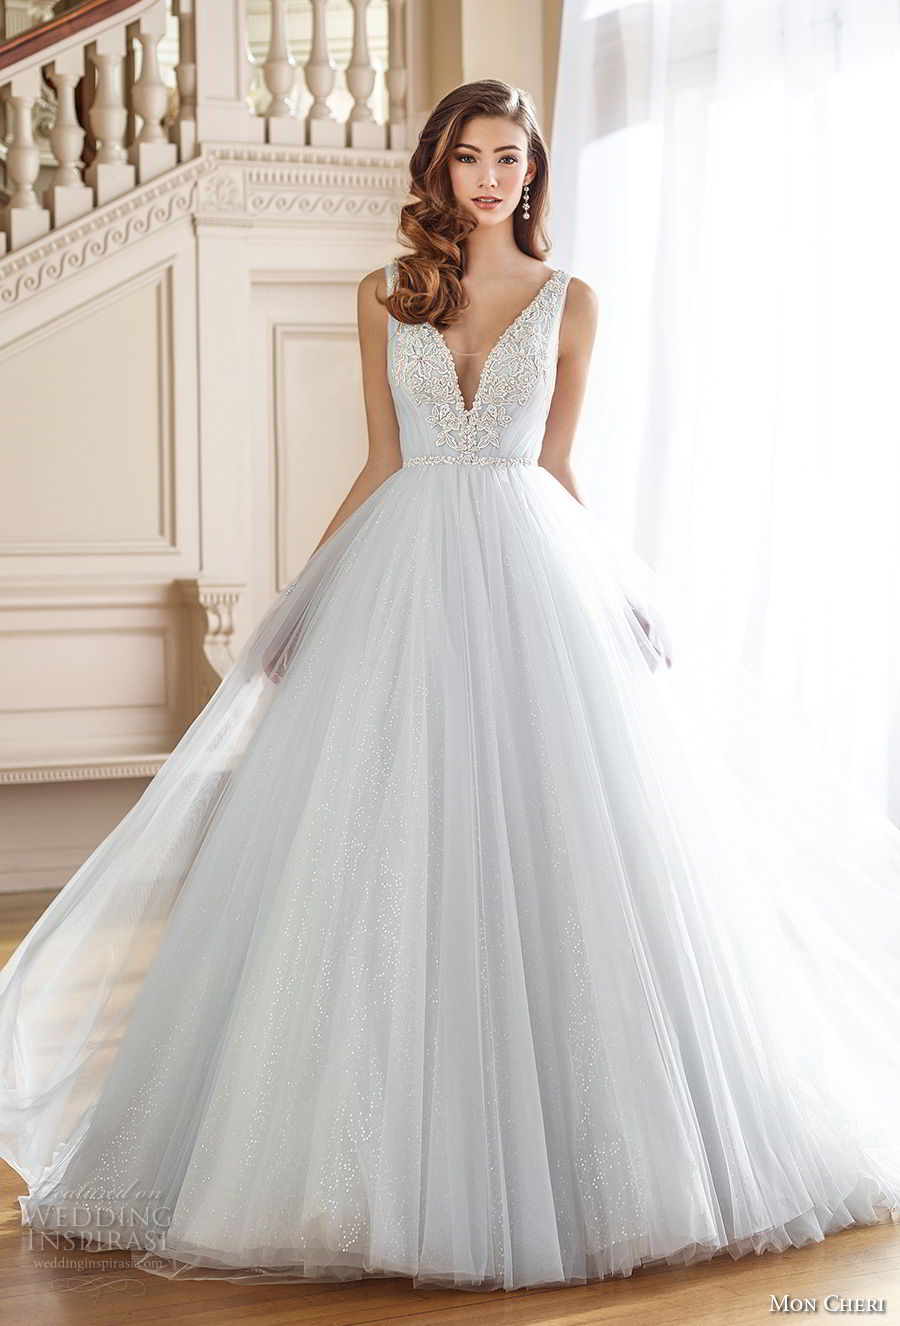 mon cheri fall 2017 bridal sleeveless deep v neck heavily embellished bodice tulle skirt blue romantic a line wedding dress open v back chapel train (217) av